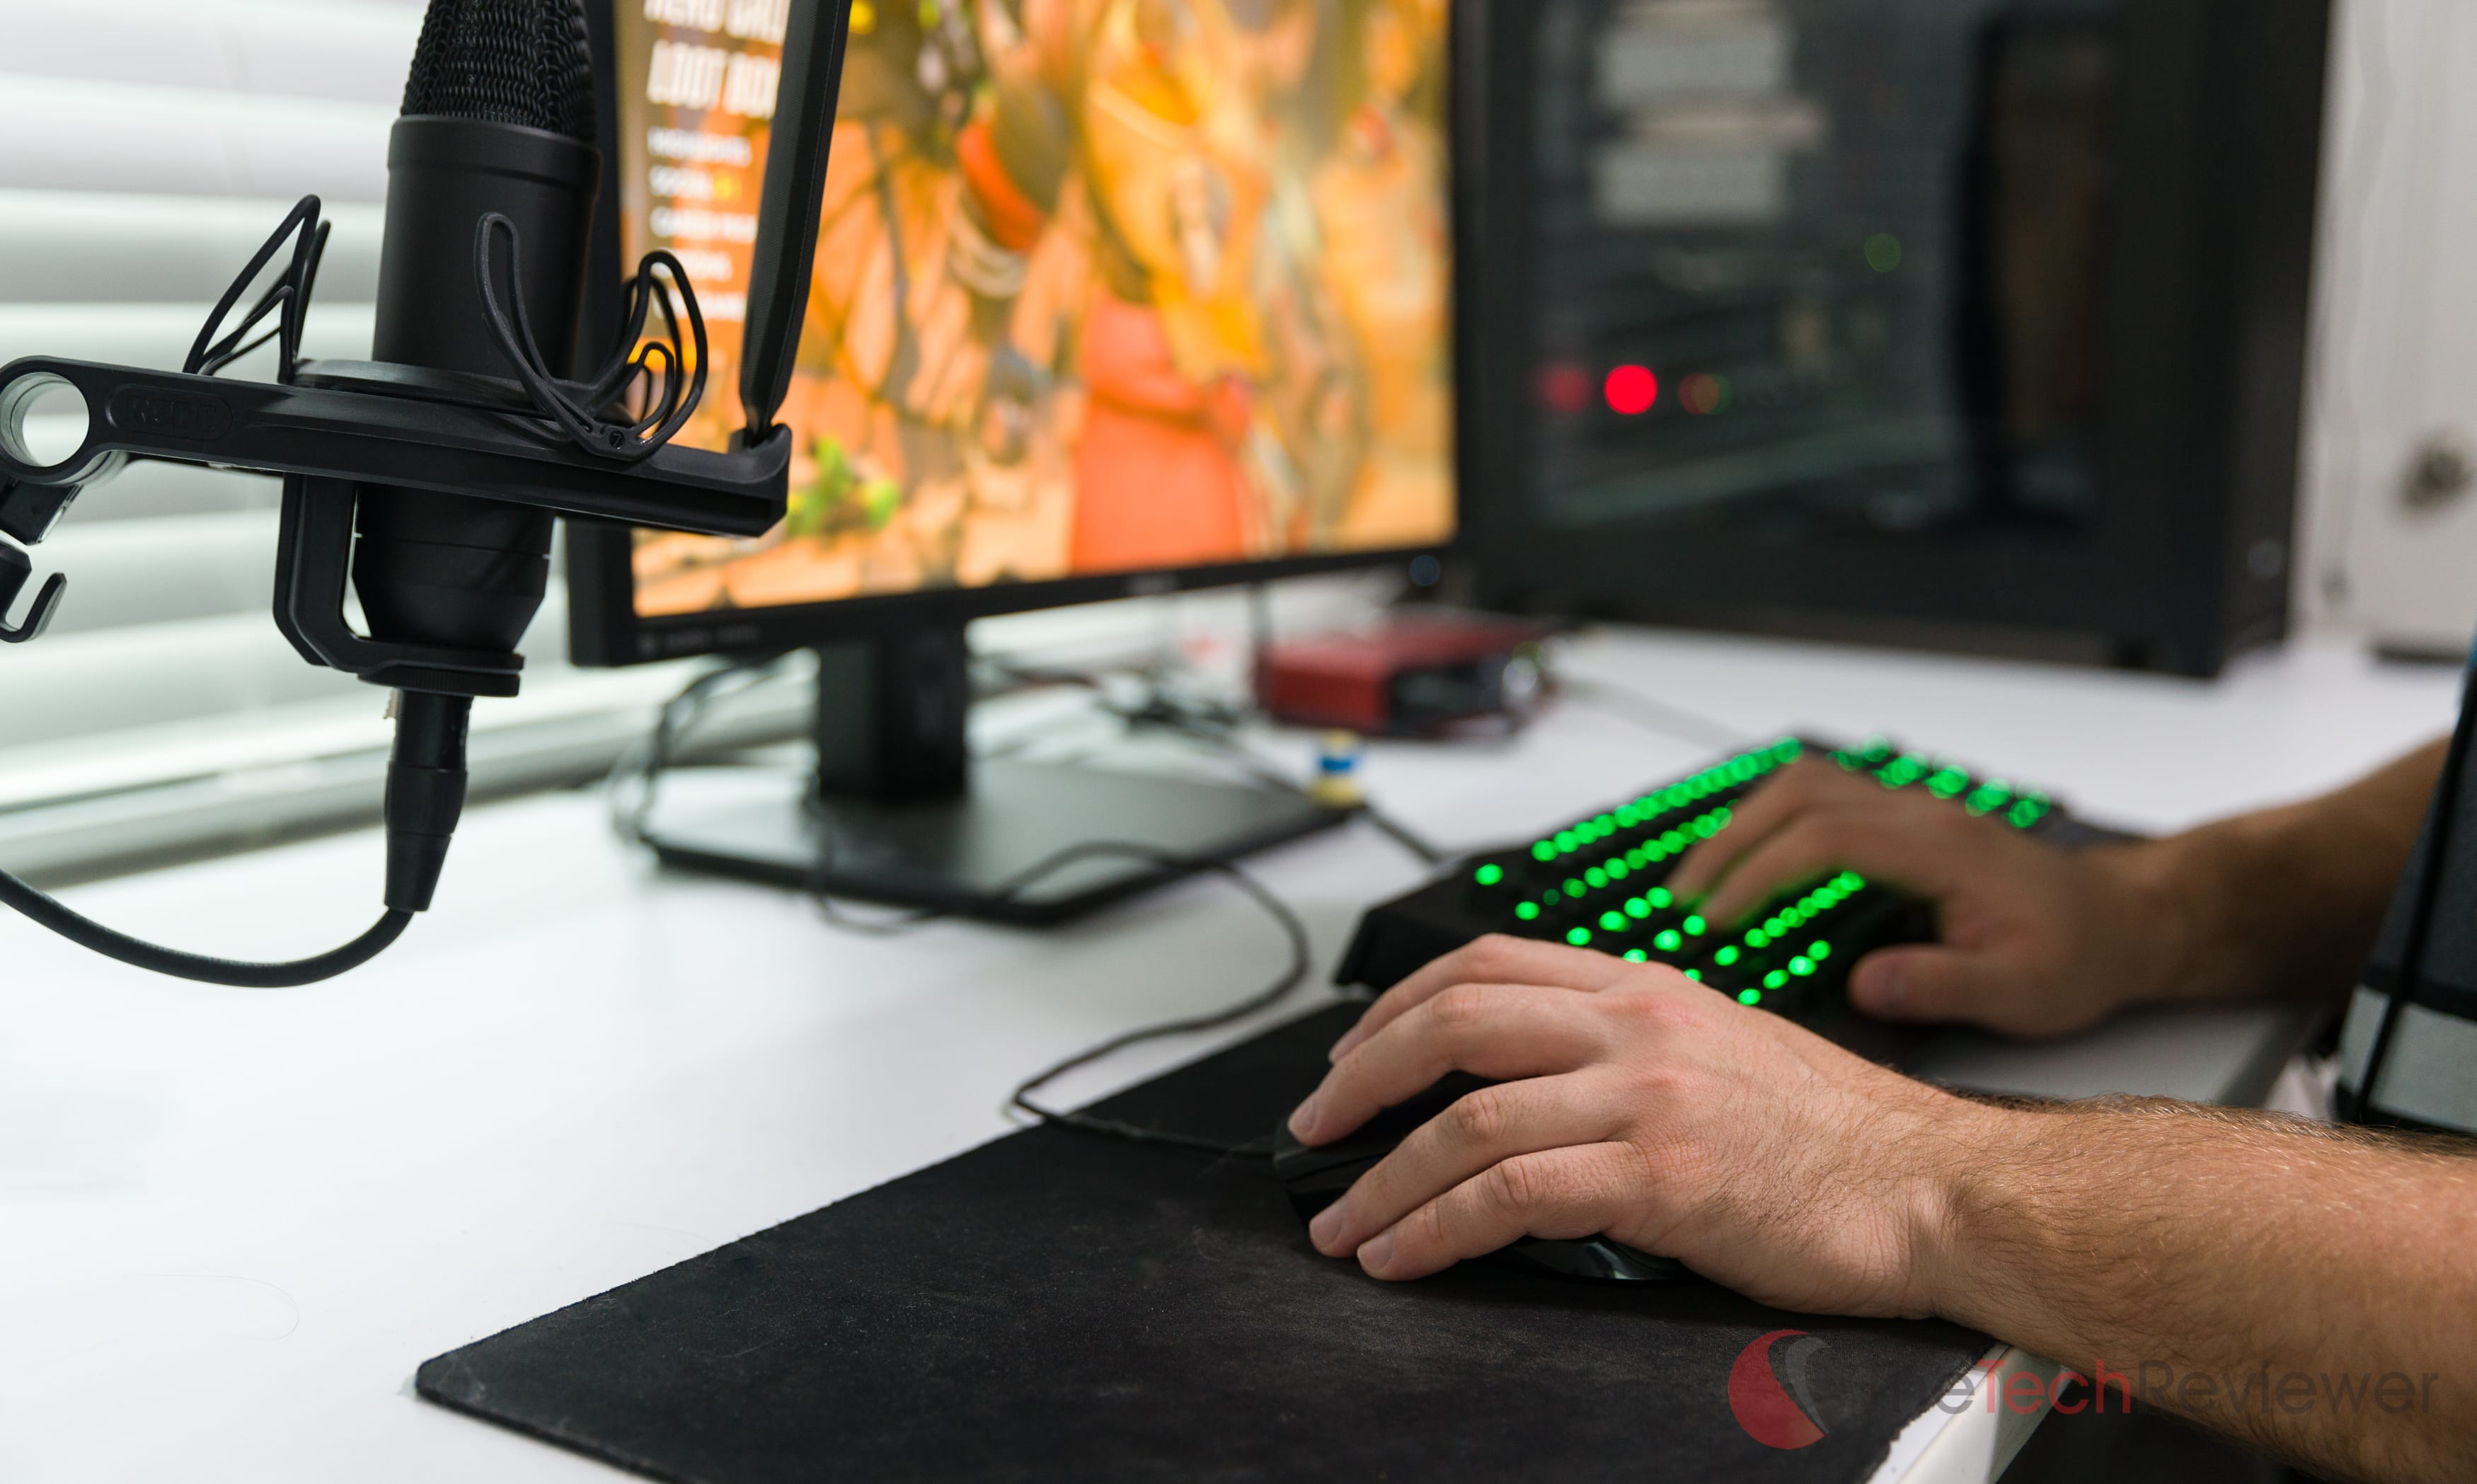 5 Of The Best Left-Handed Gaming Mice 2017